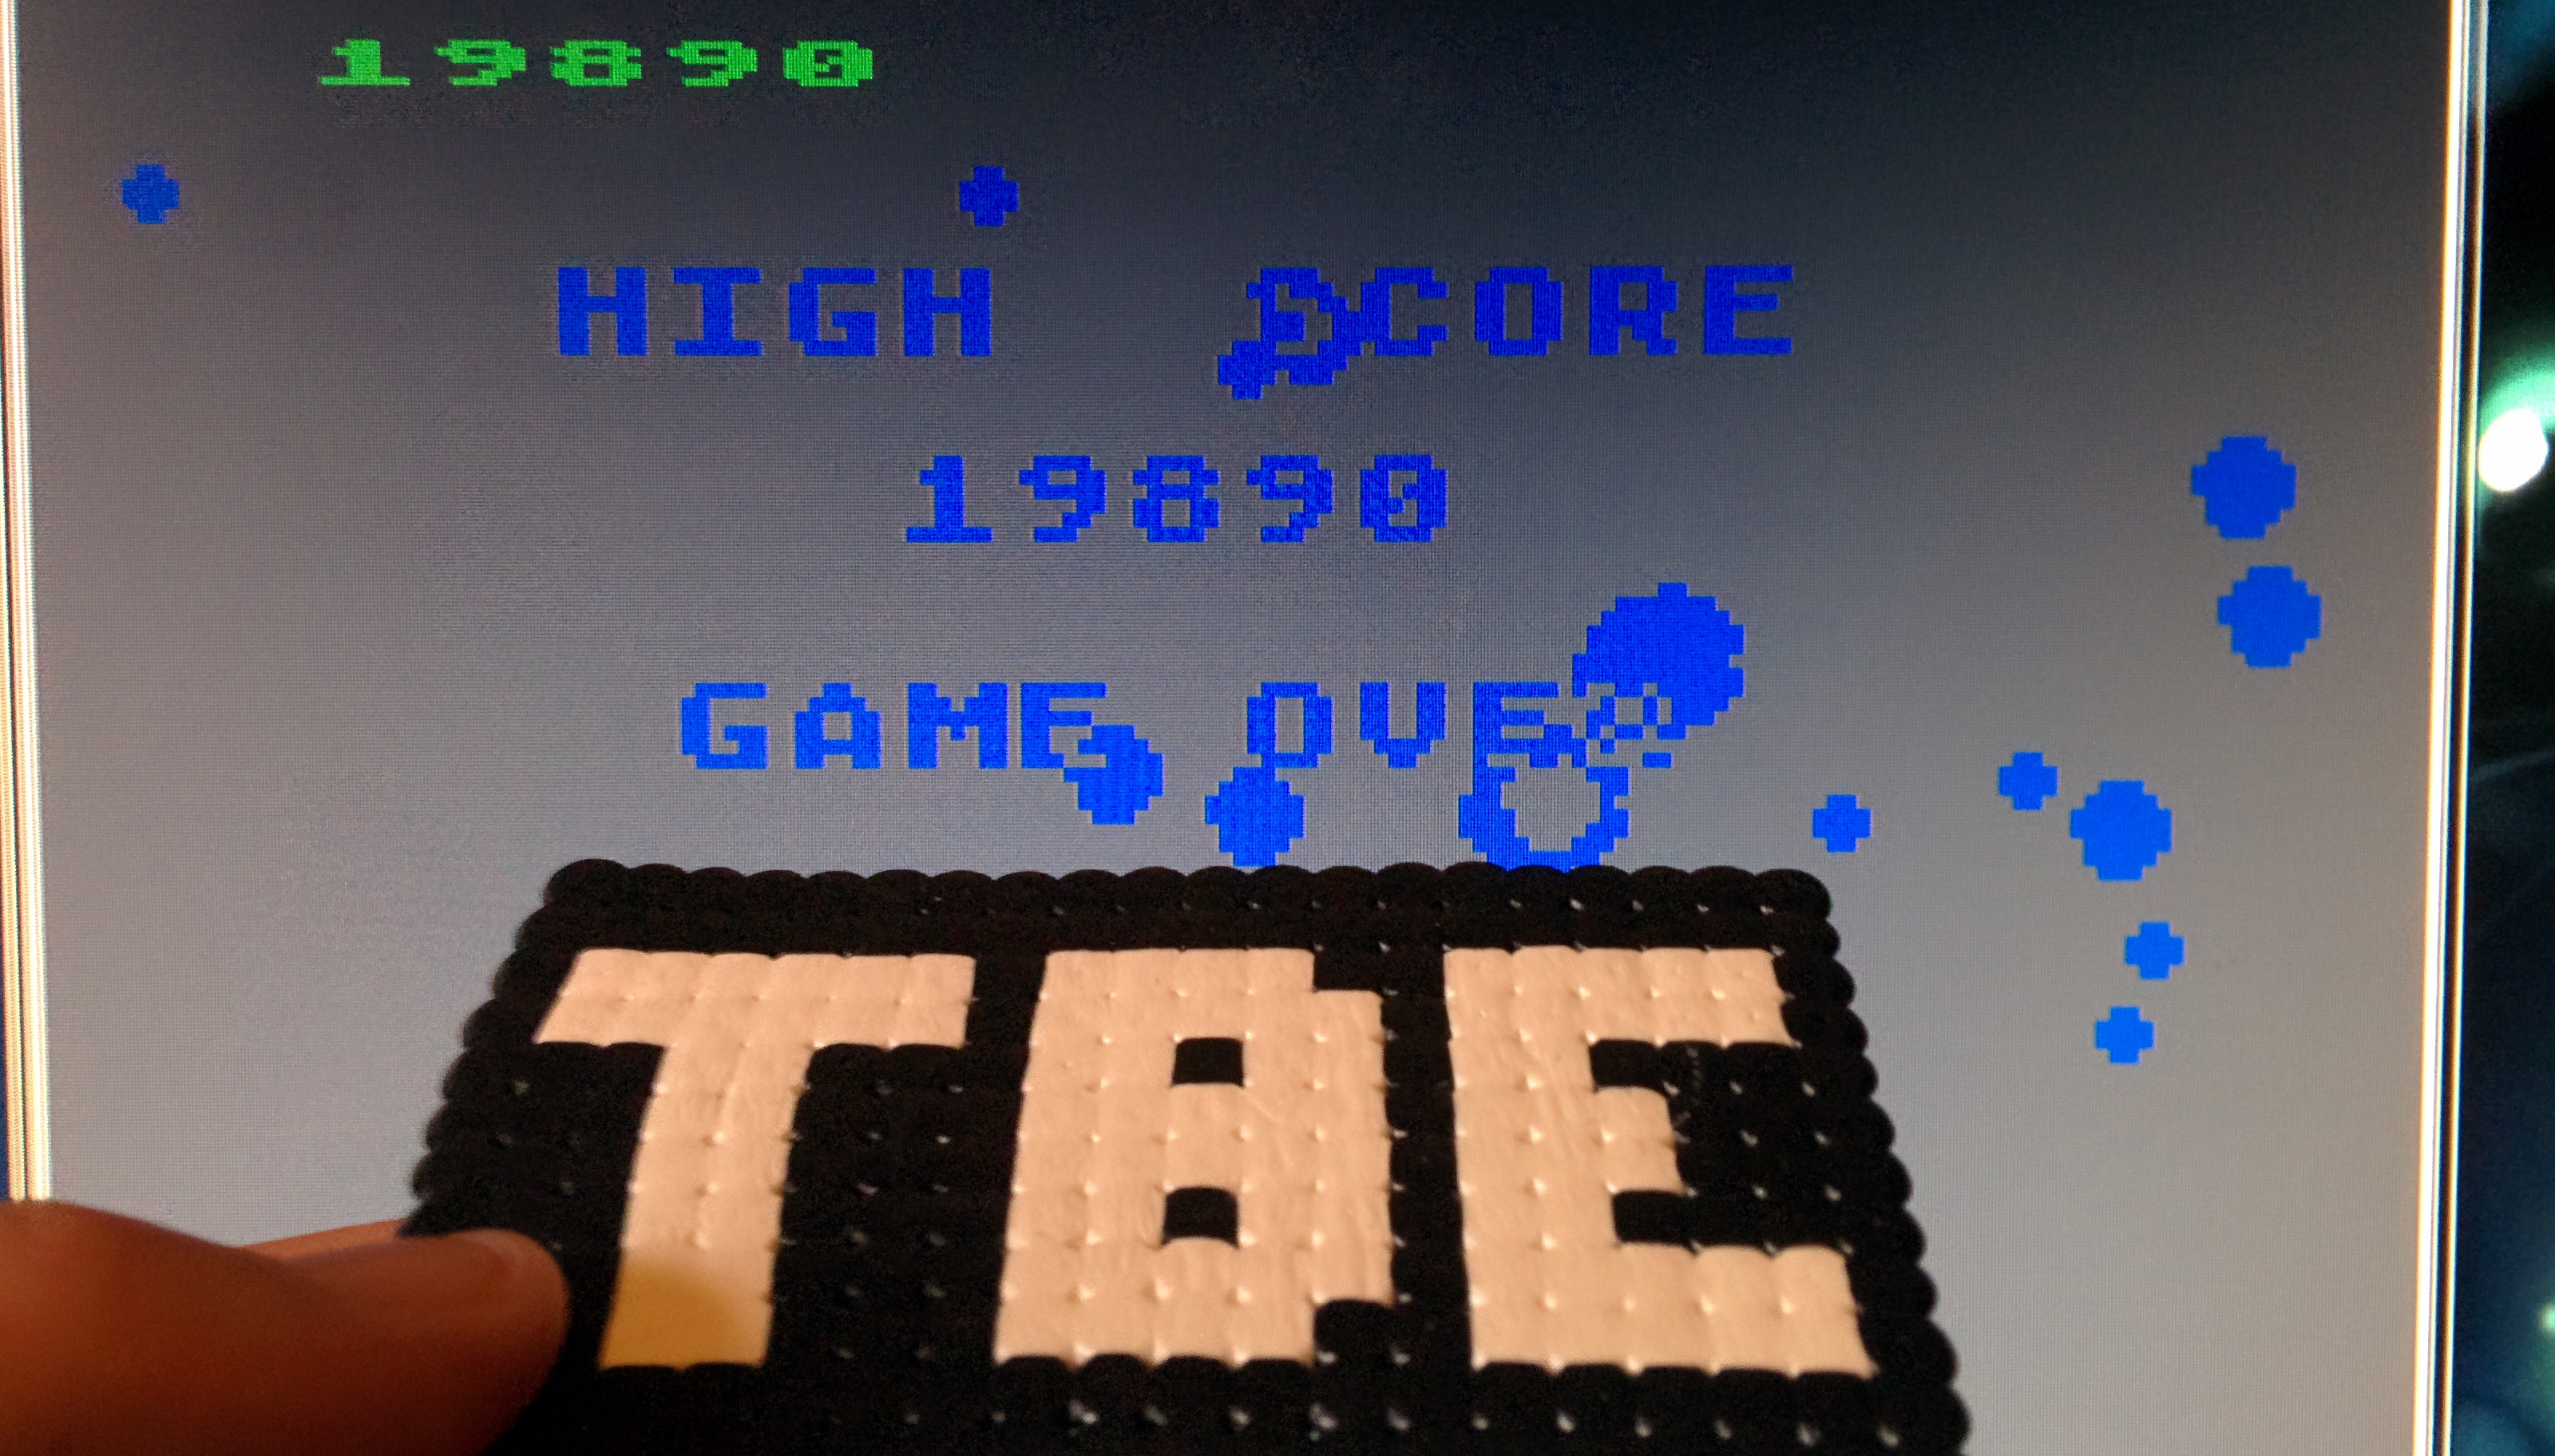 Sixx: Asteroids: Fast/Hyperspace/No Bounce (Atari 400/800/XL/XE Emulated) 19,890 points on 2014-10-24 09:06:56